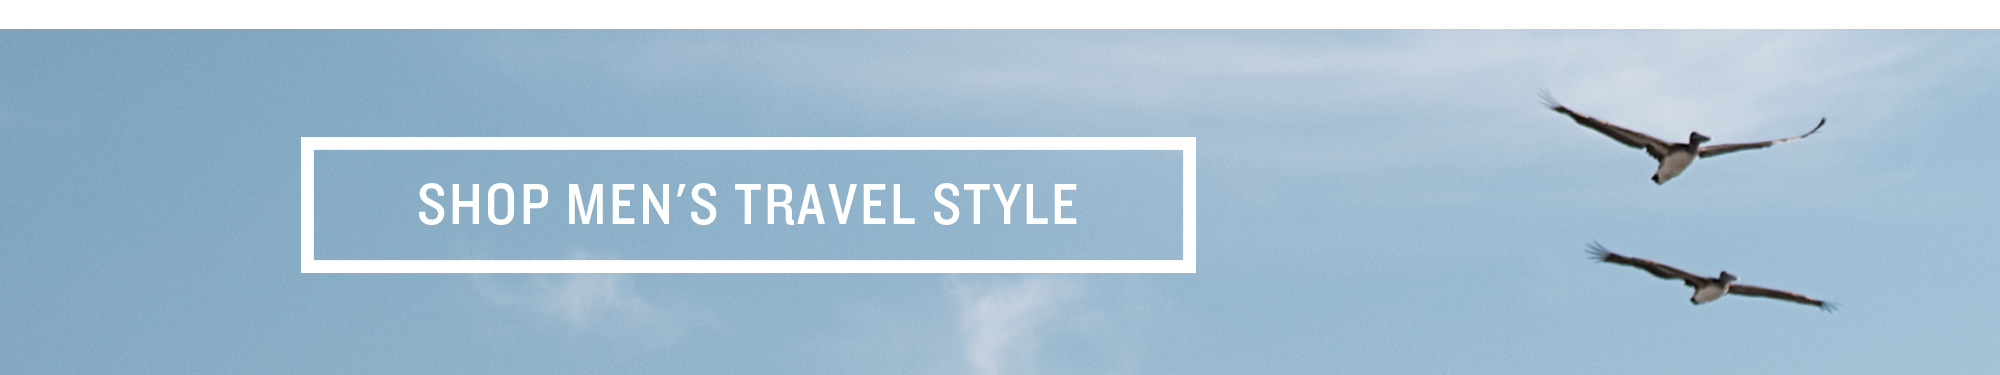 Men's Travel Style